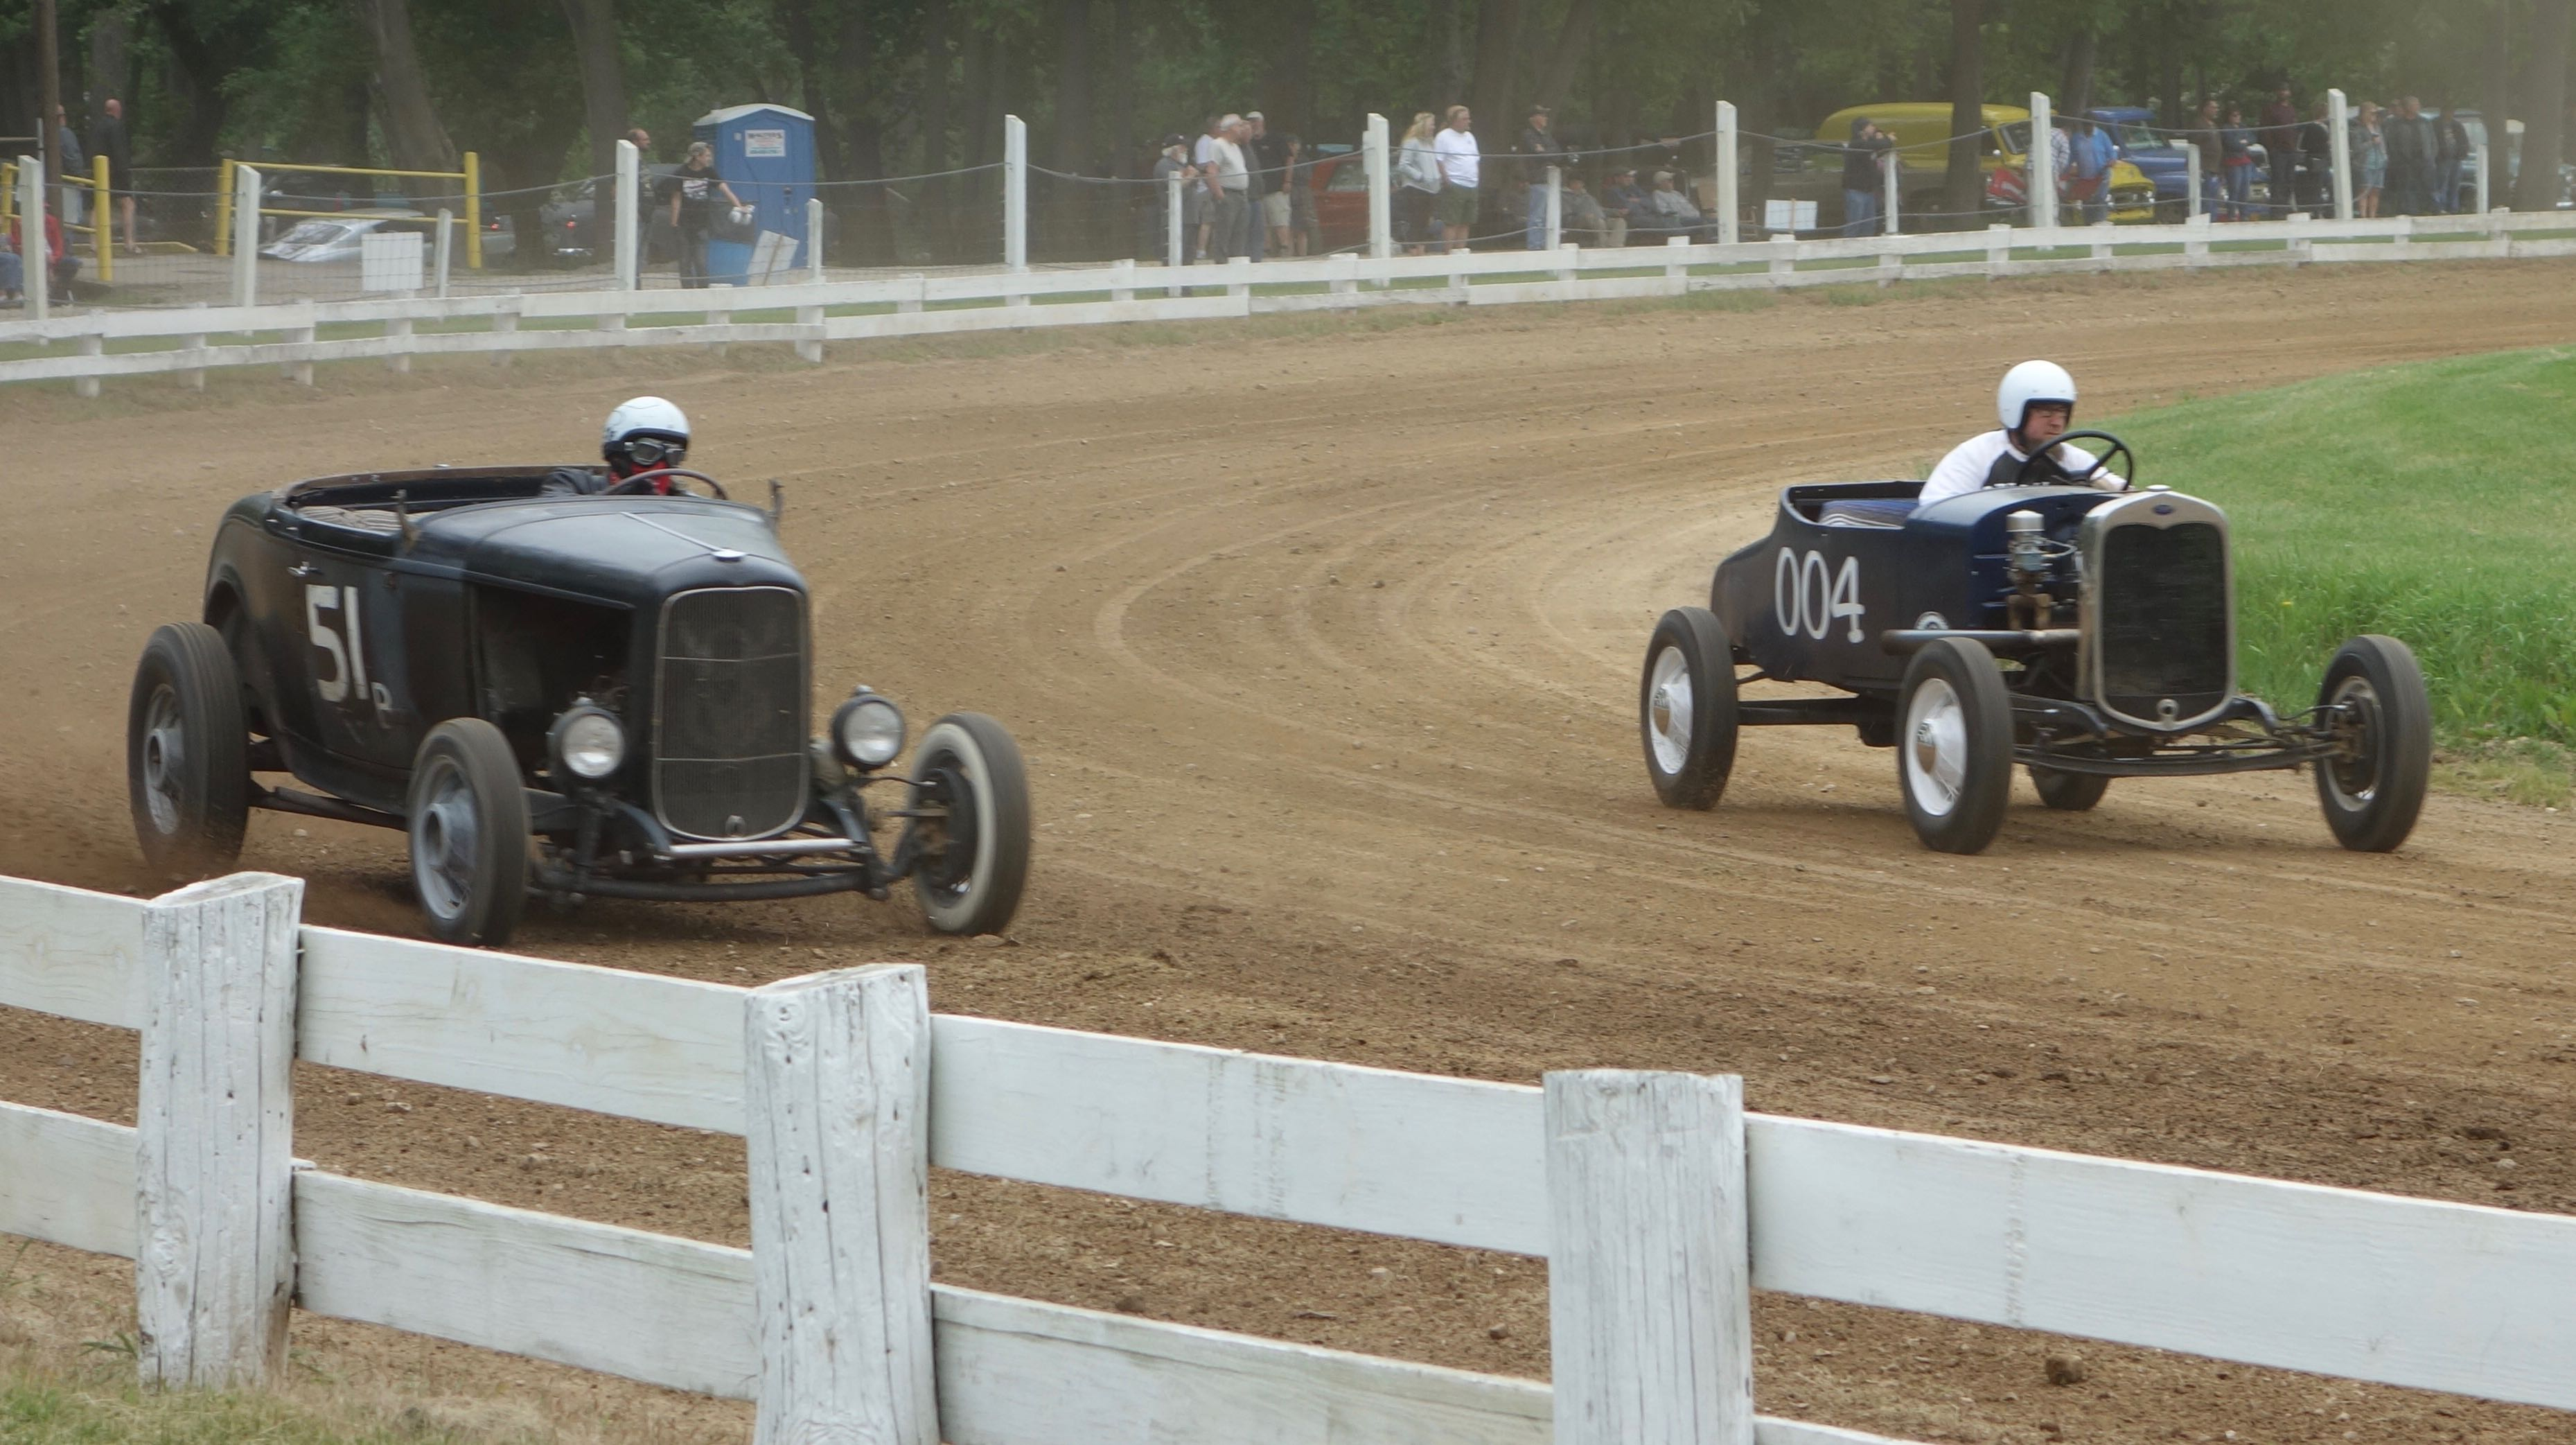 In a throwback to a bygone era, jalopies race around Latimore Valley Fairgrounds track | Andy Reid photos